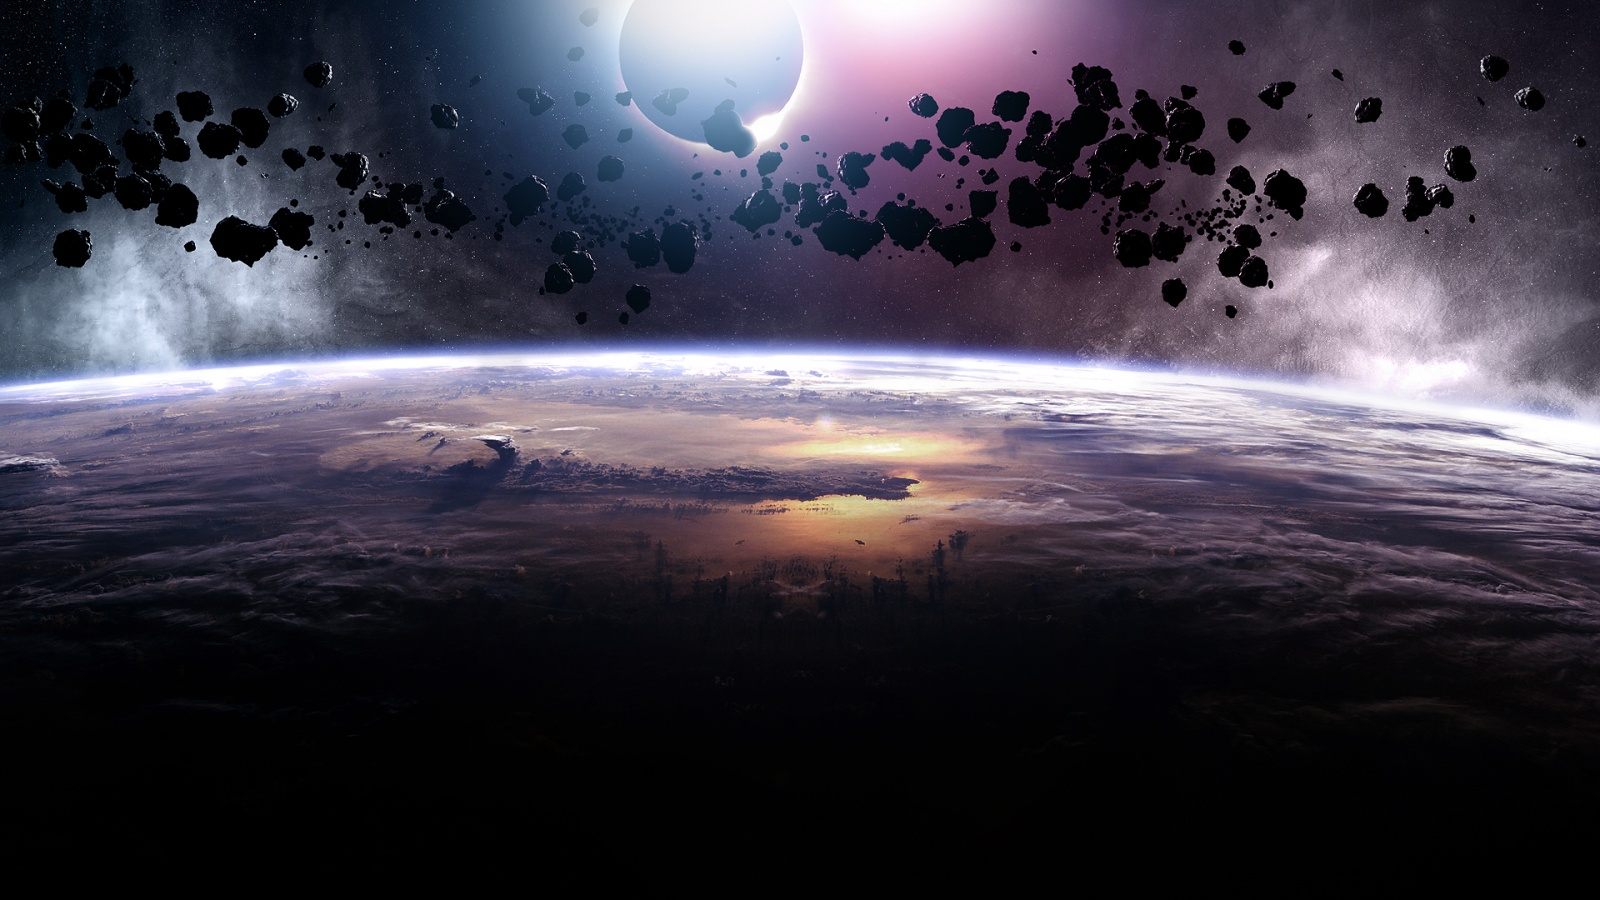 Asteroids Eclipse Wallpapers in jpg format for free download